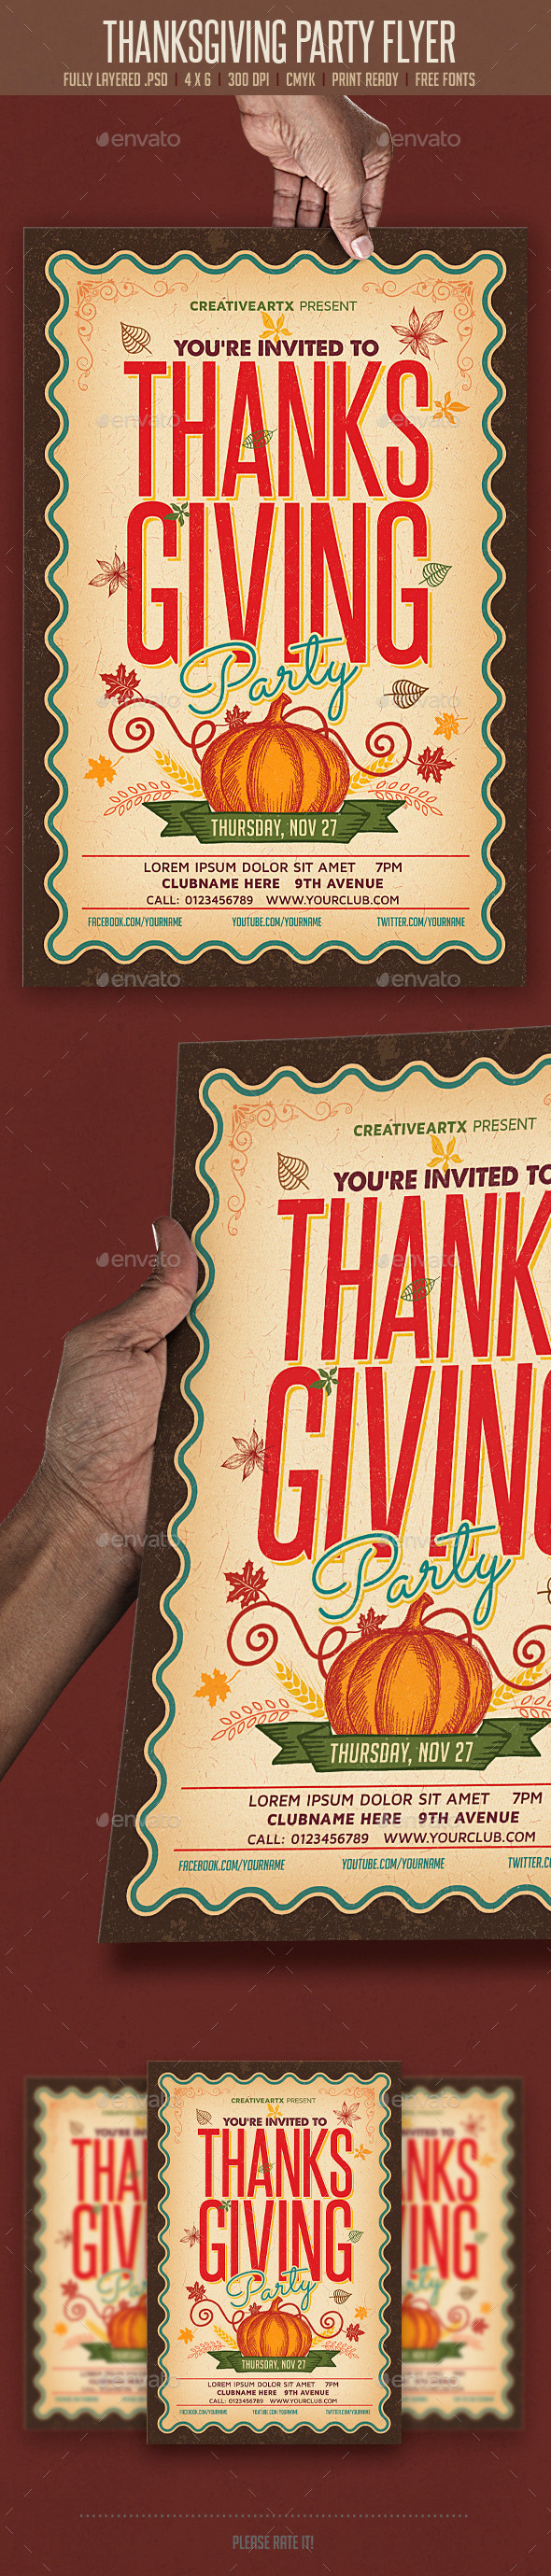 GraphicRiver Thanksgiving Party Flyer 9273175